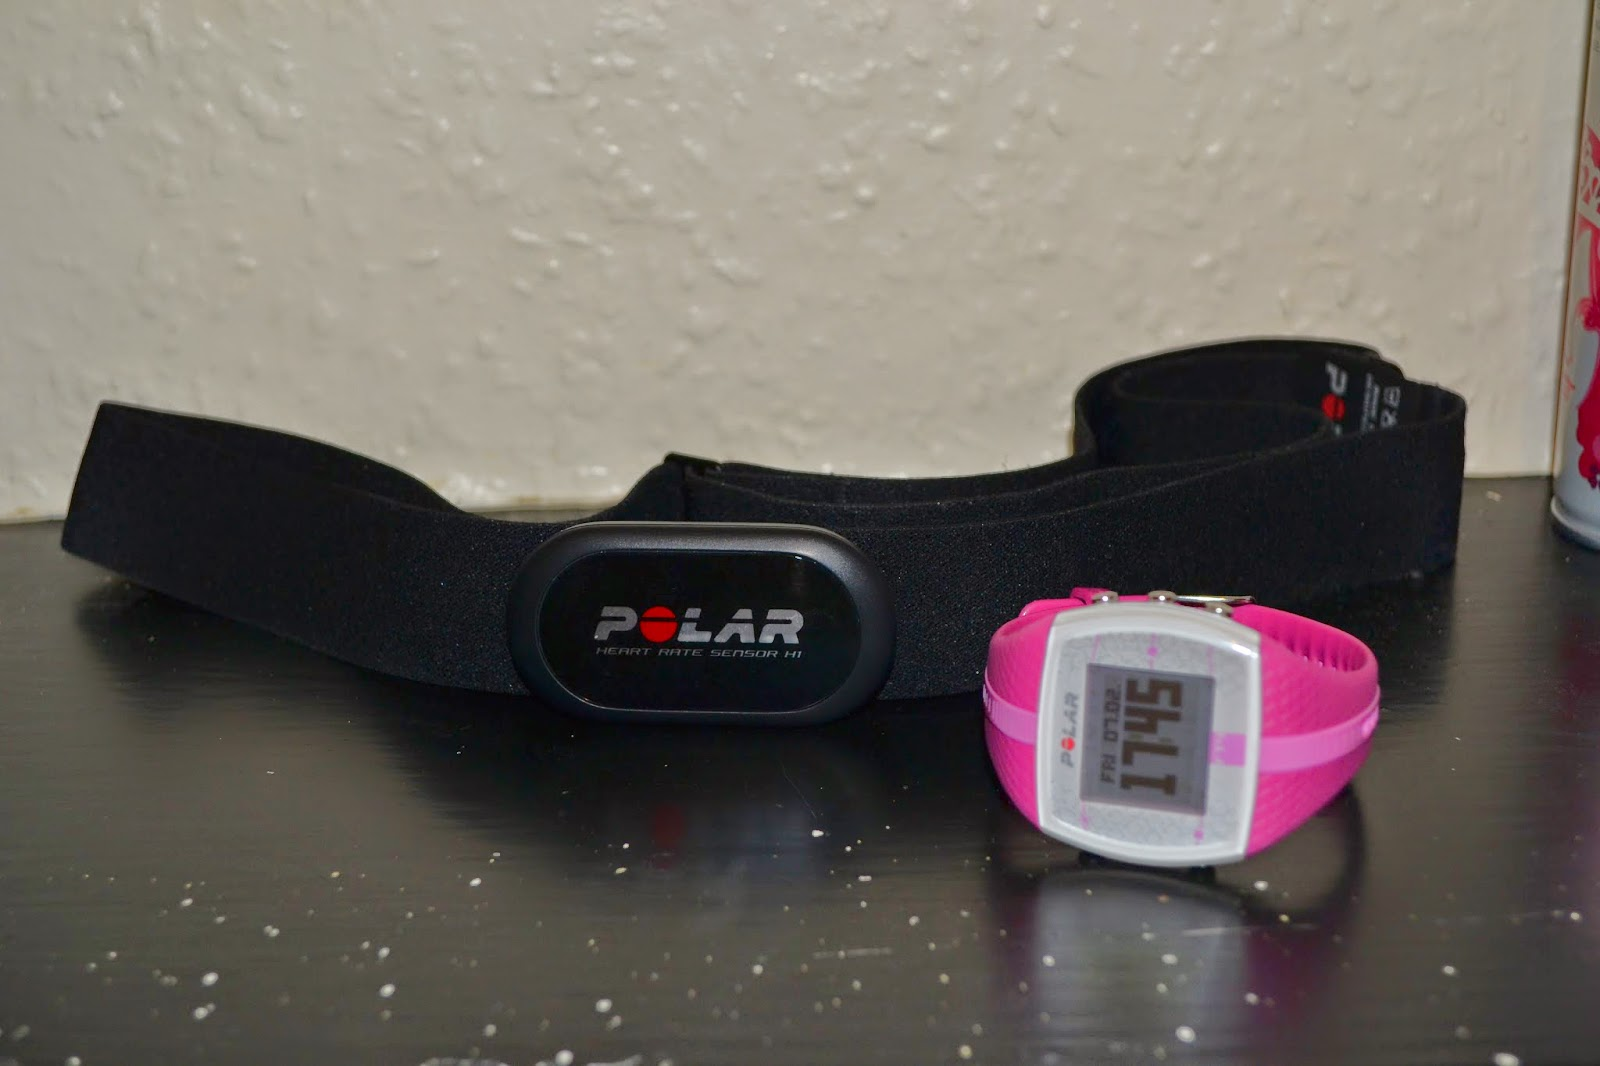 polar ft4 review